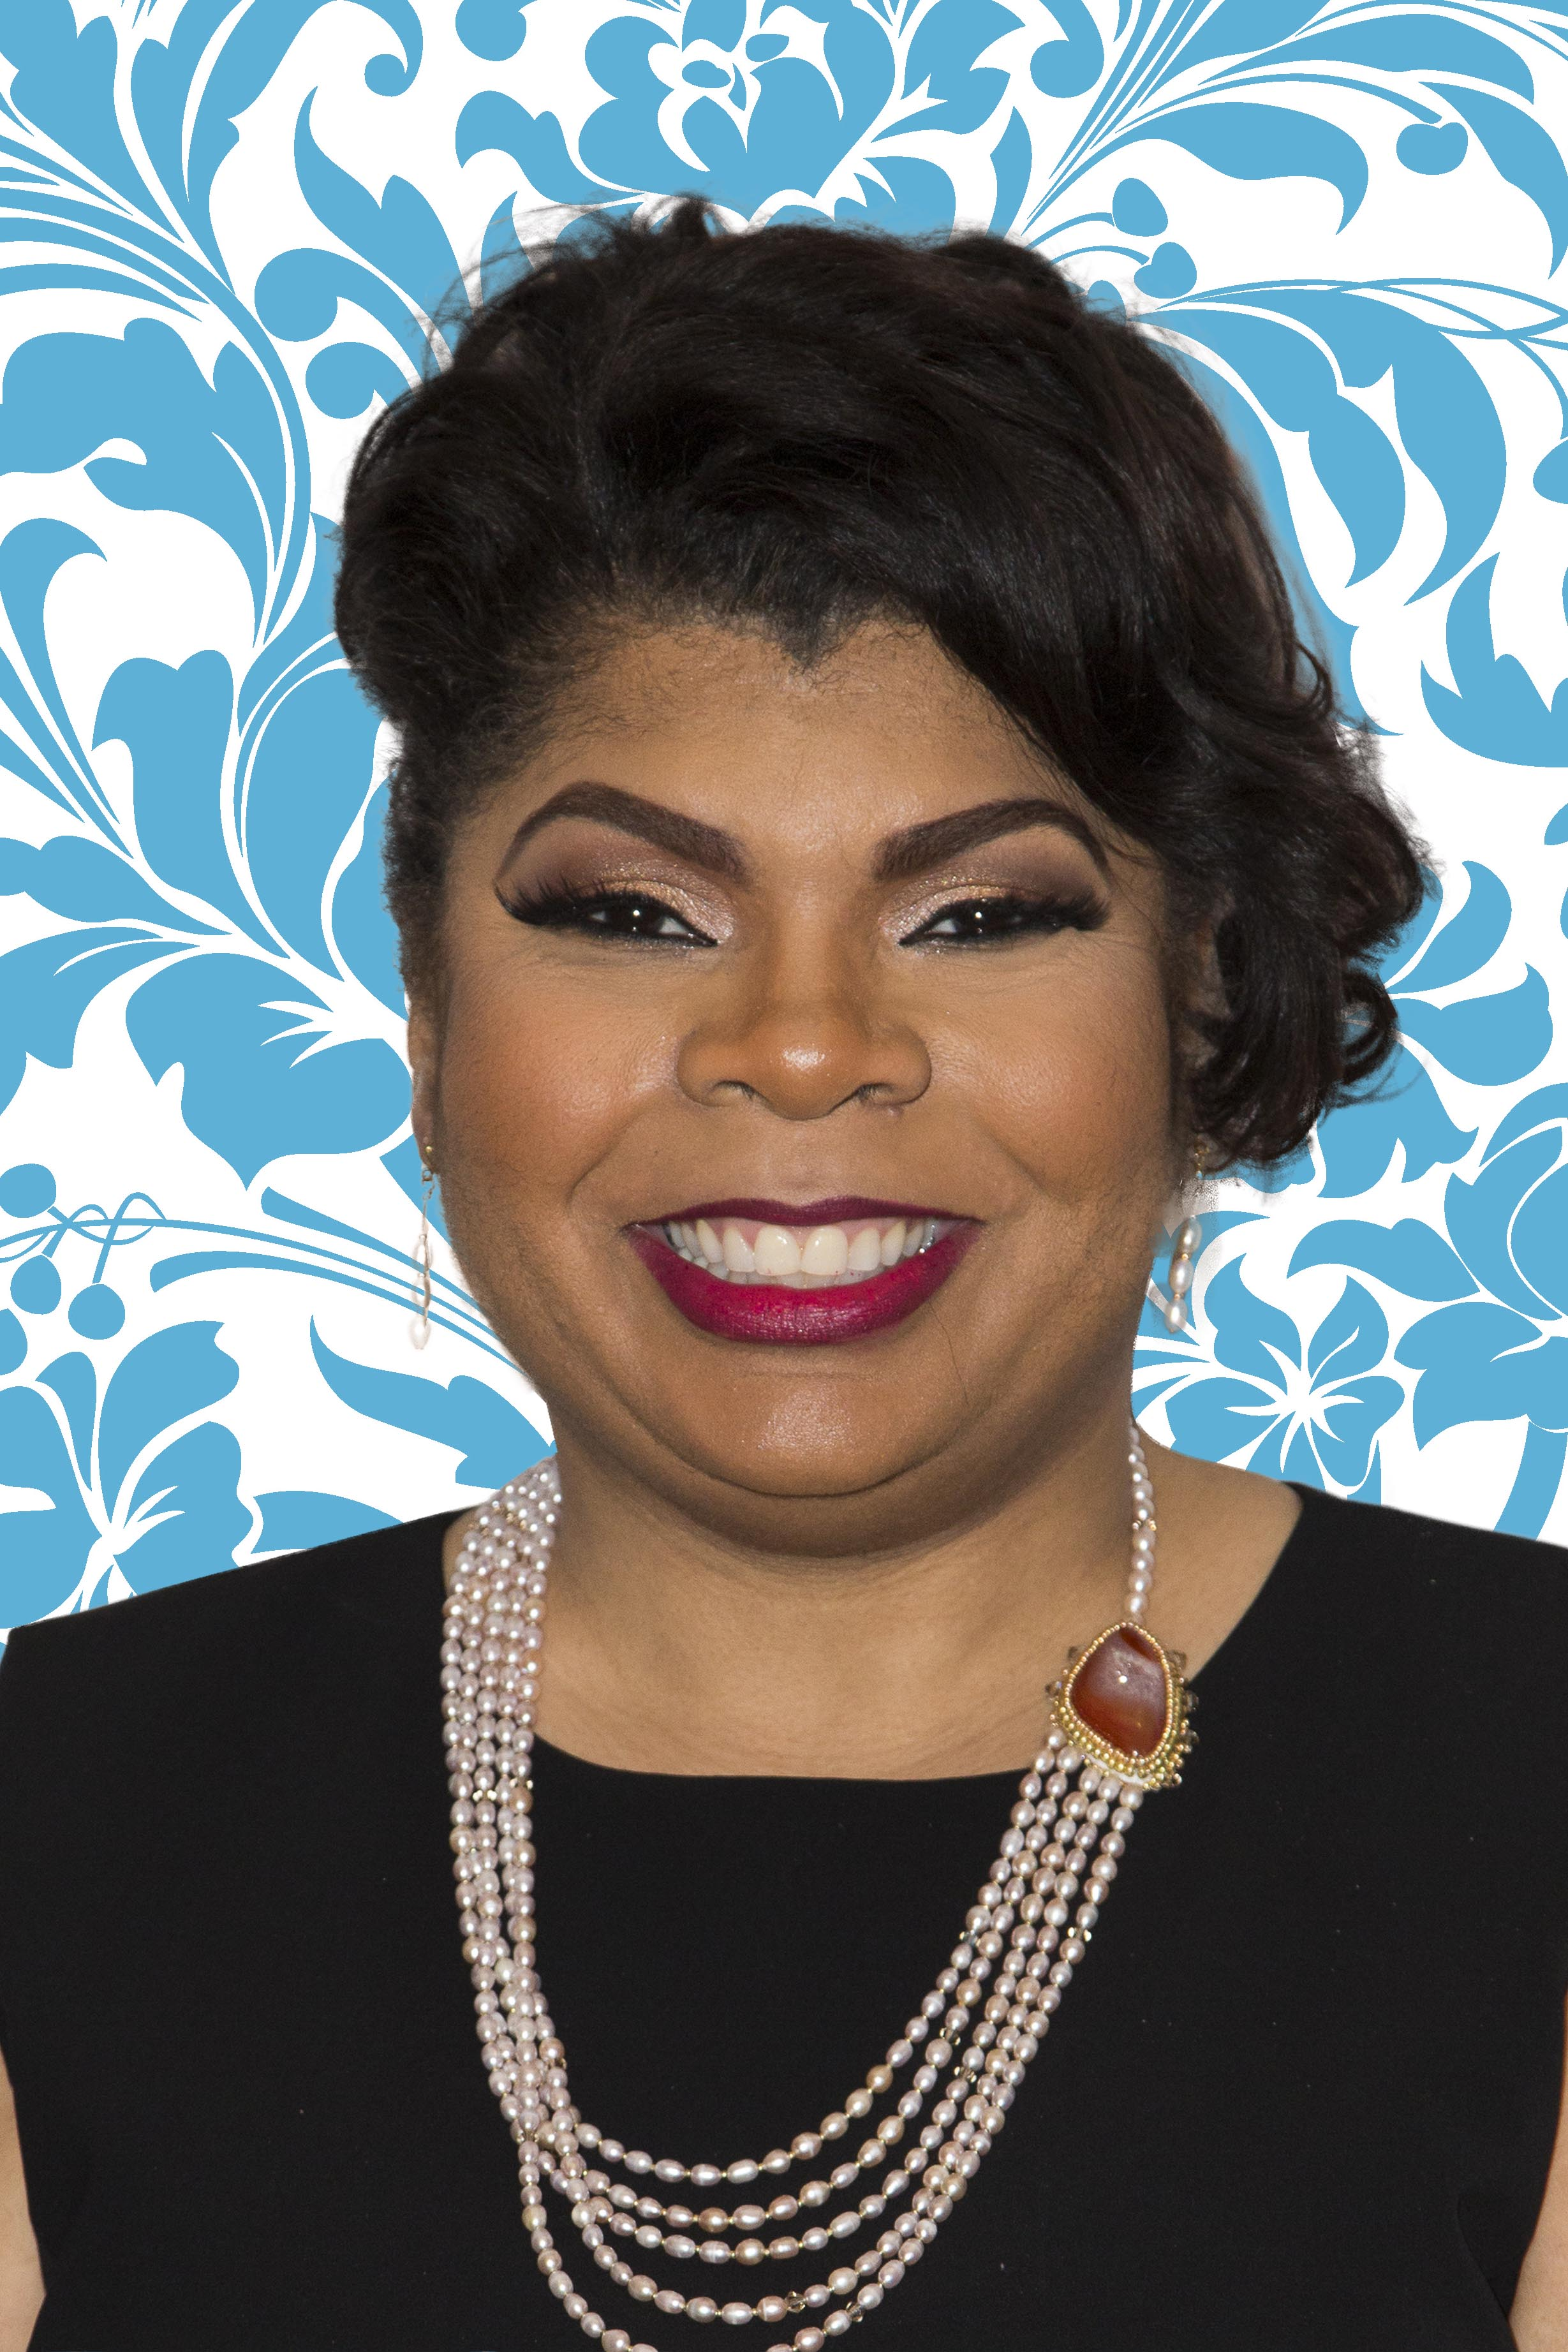 The Quick Read: April Ryan Received Death Threats After Asking If Trump Considered Resigning